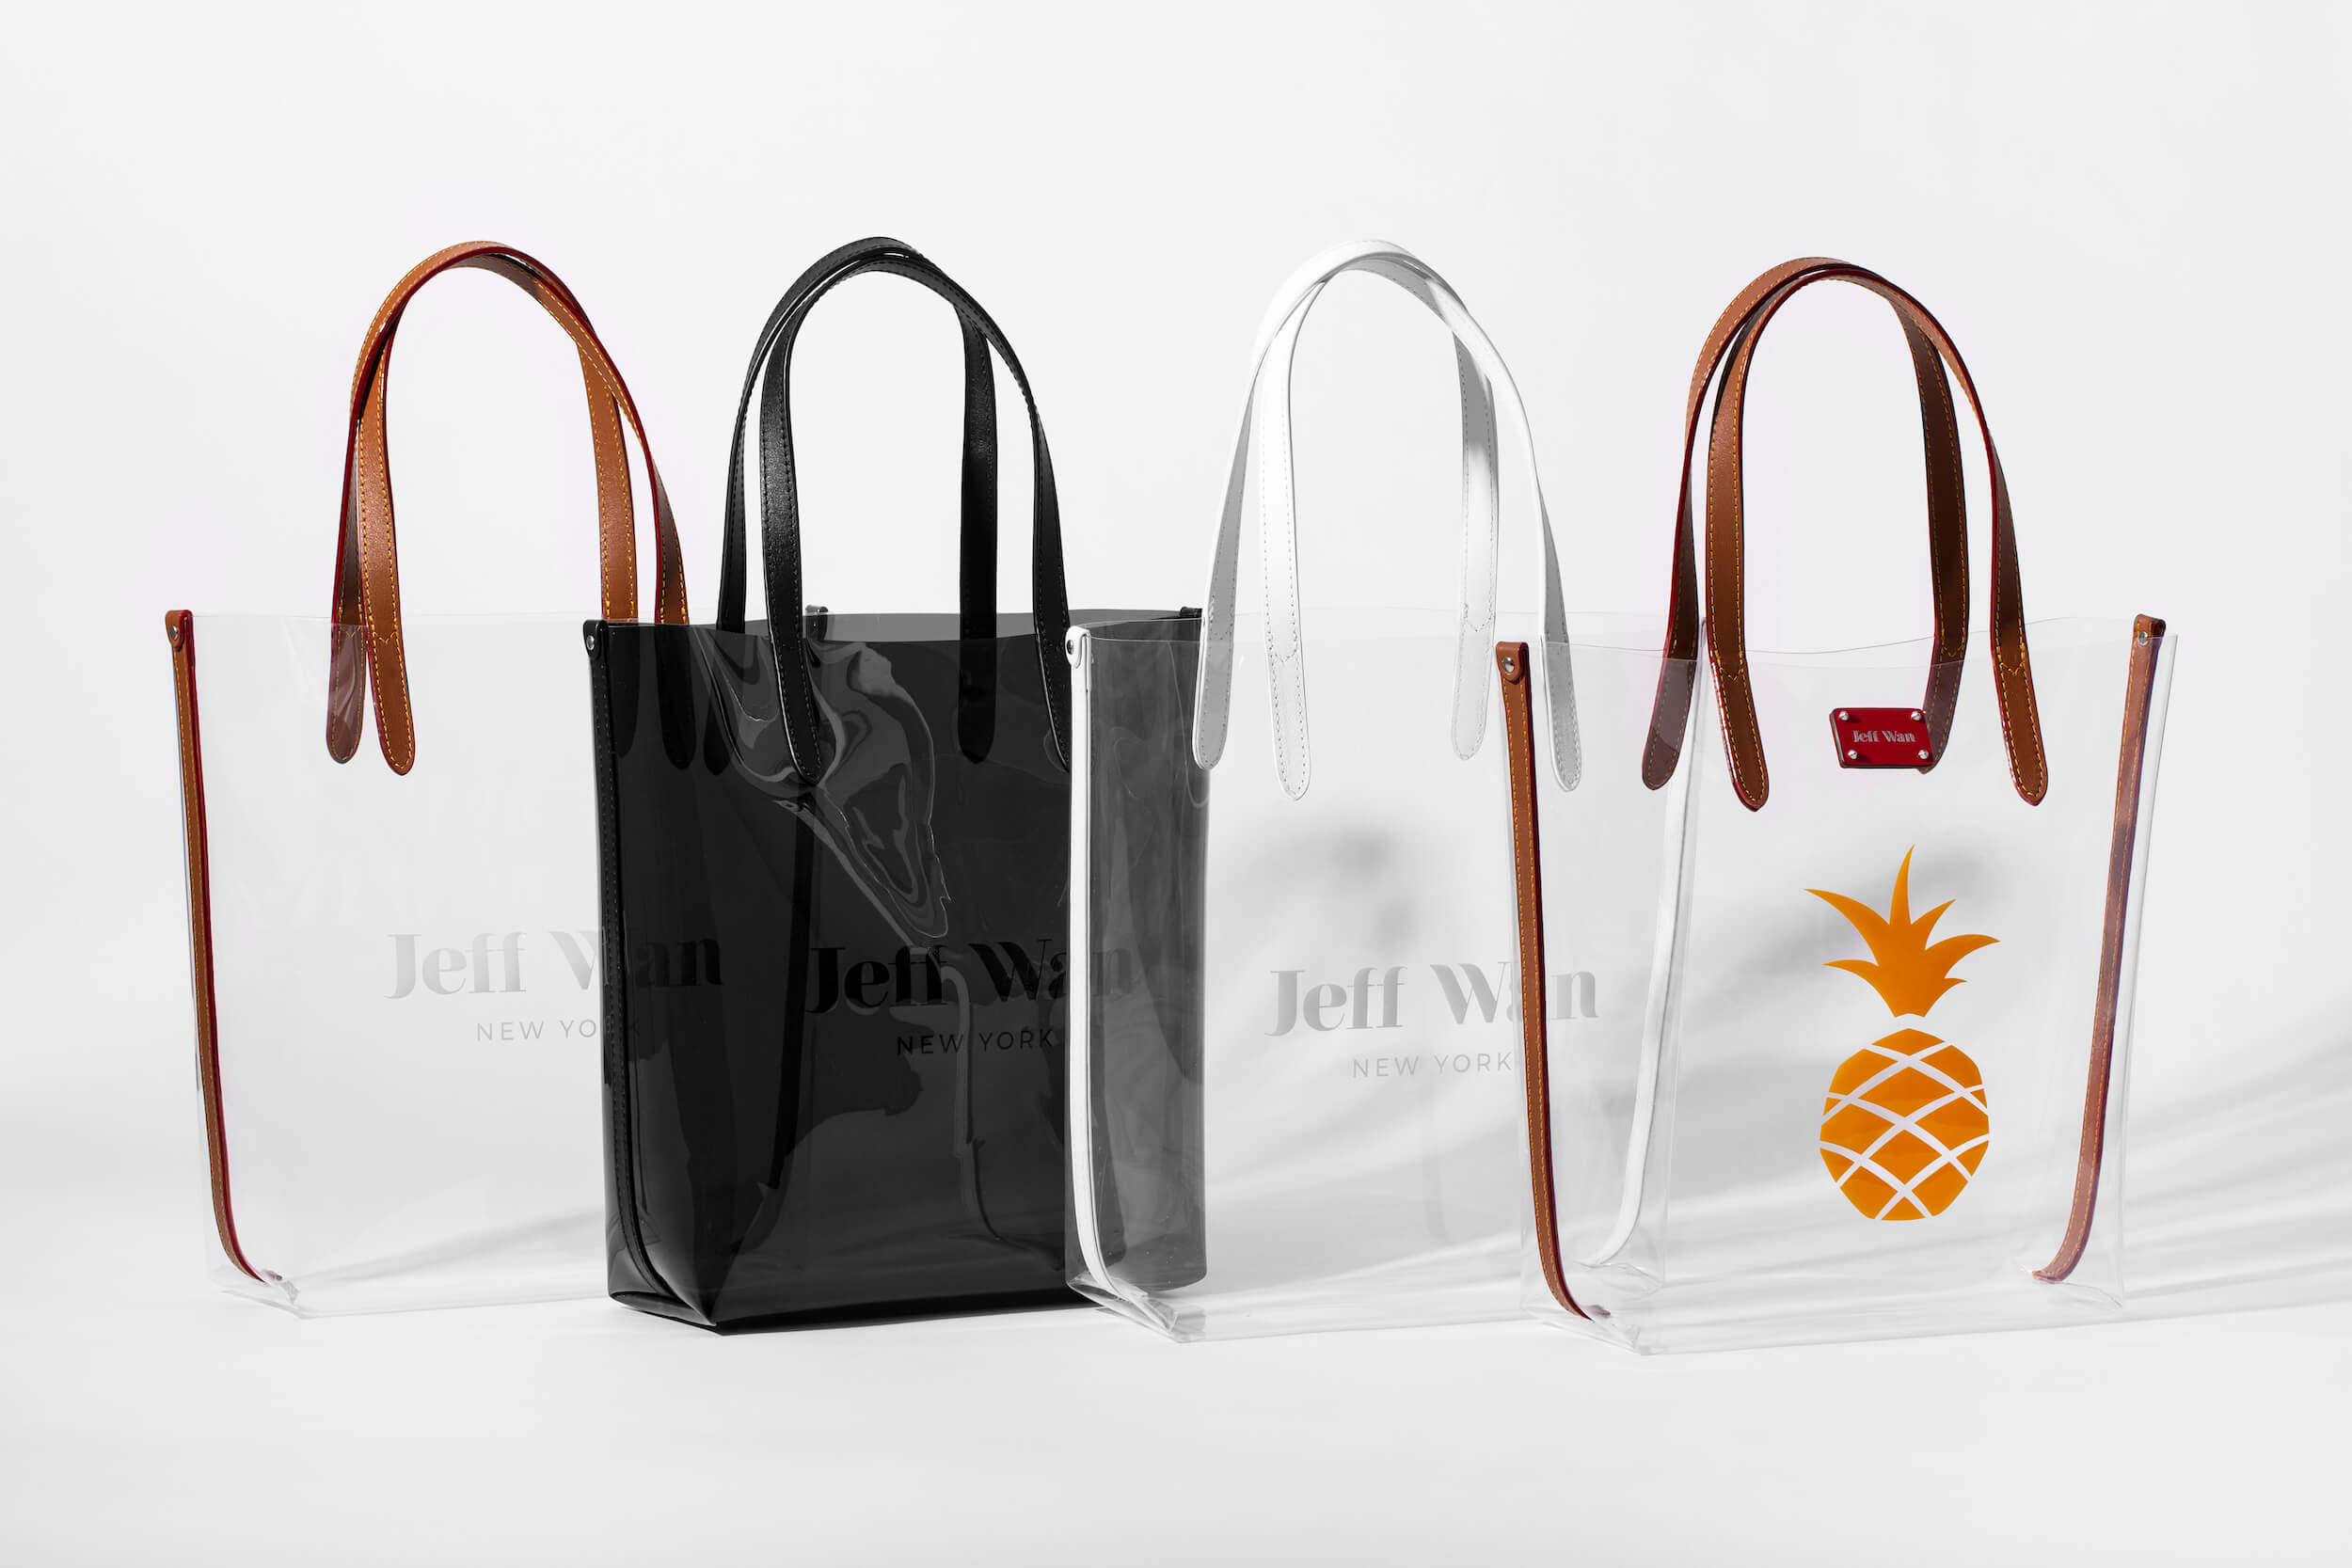 The clear tote bags are the latest addition to Jeff Wan's celebrated collection. Photo: Courtesy of Jeff Wan.